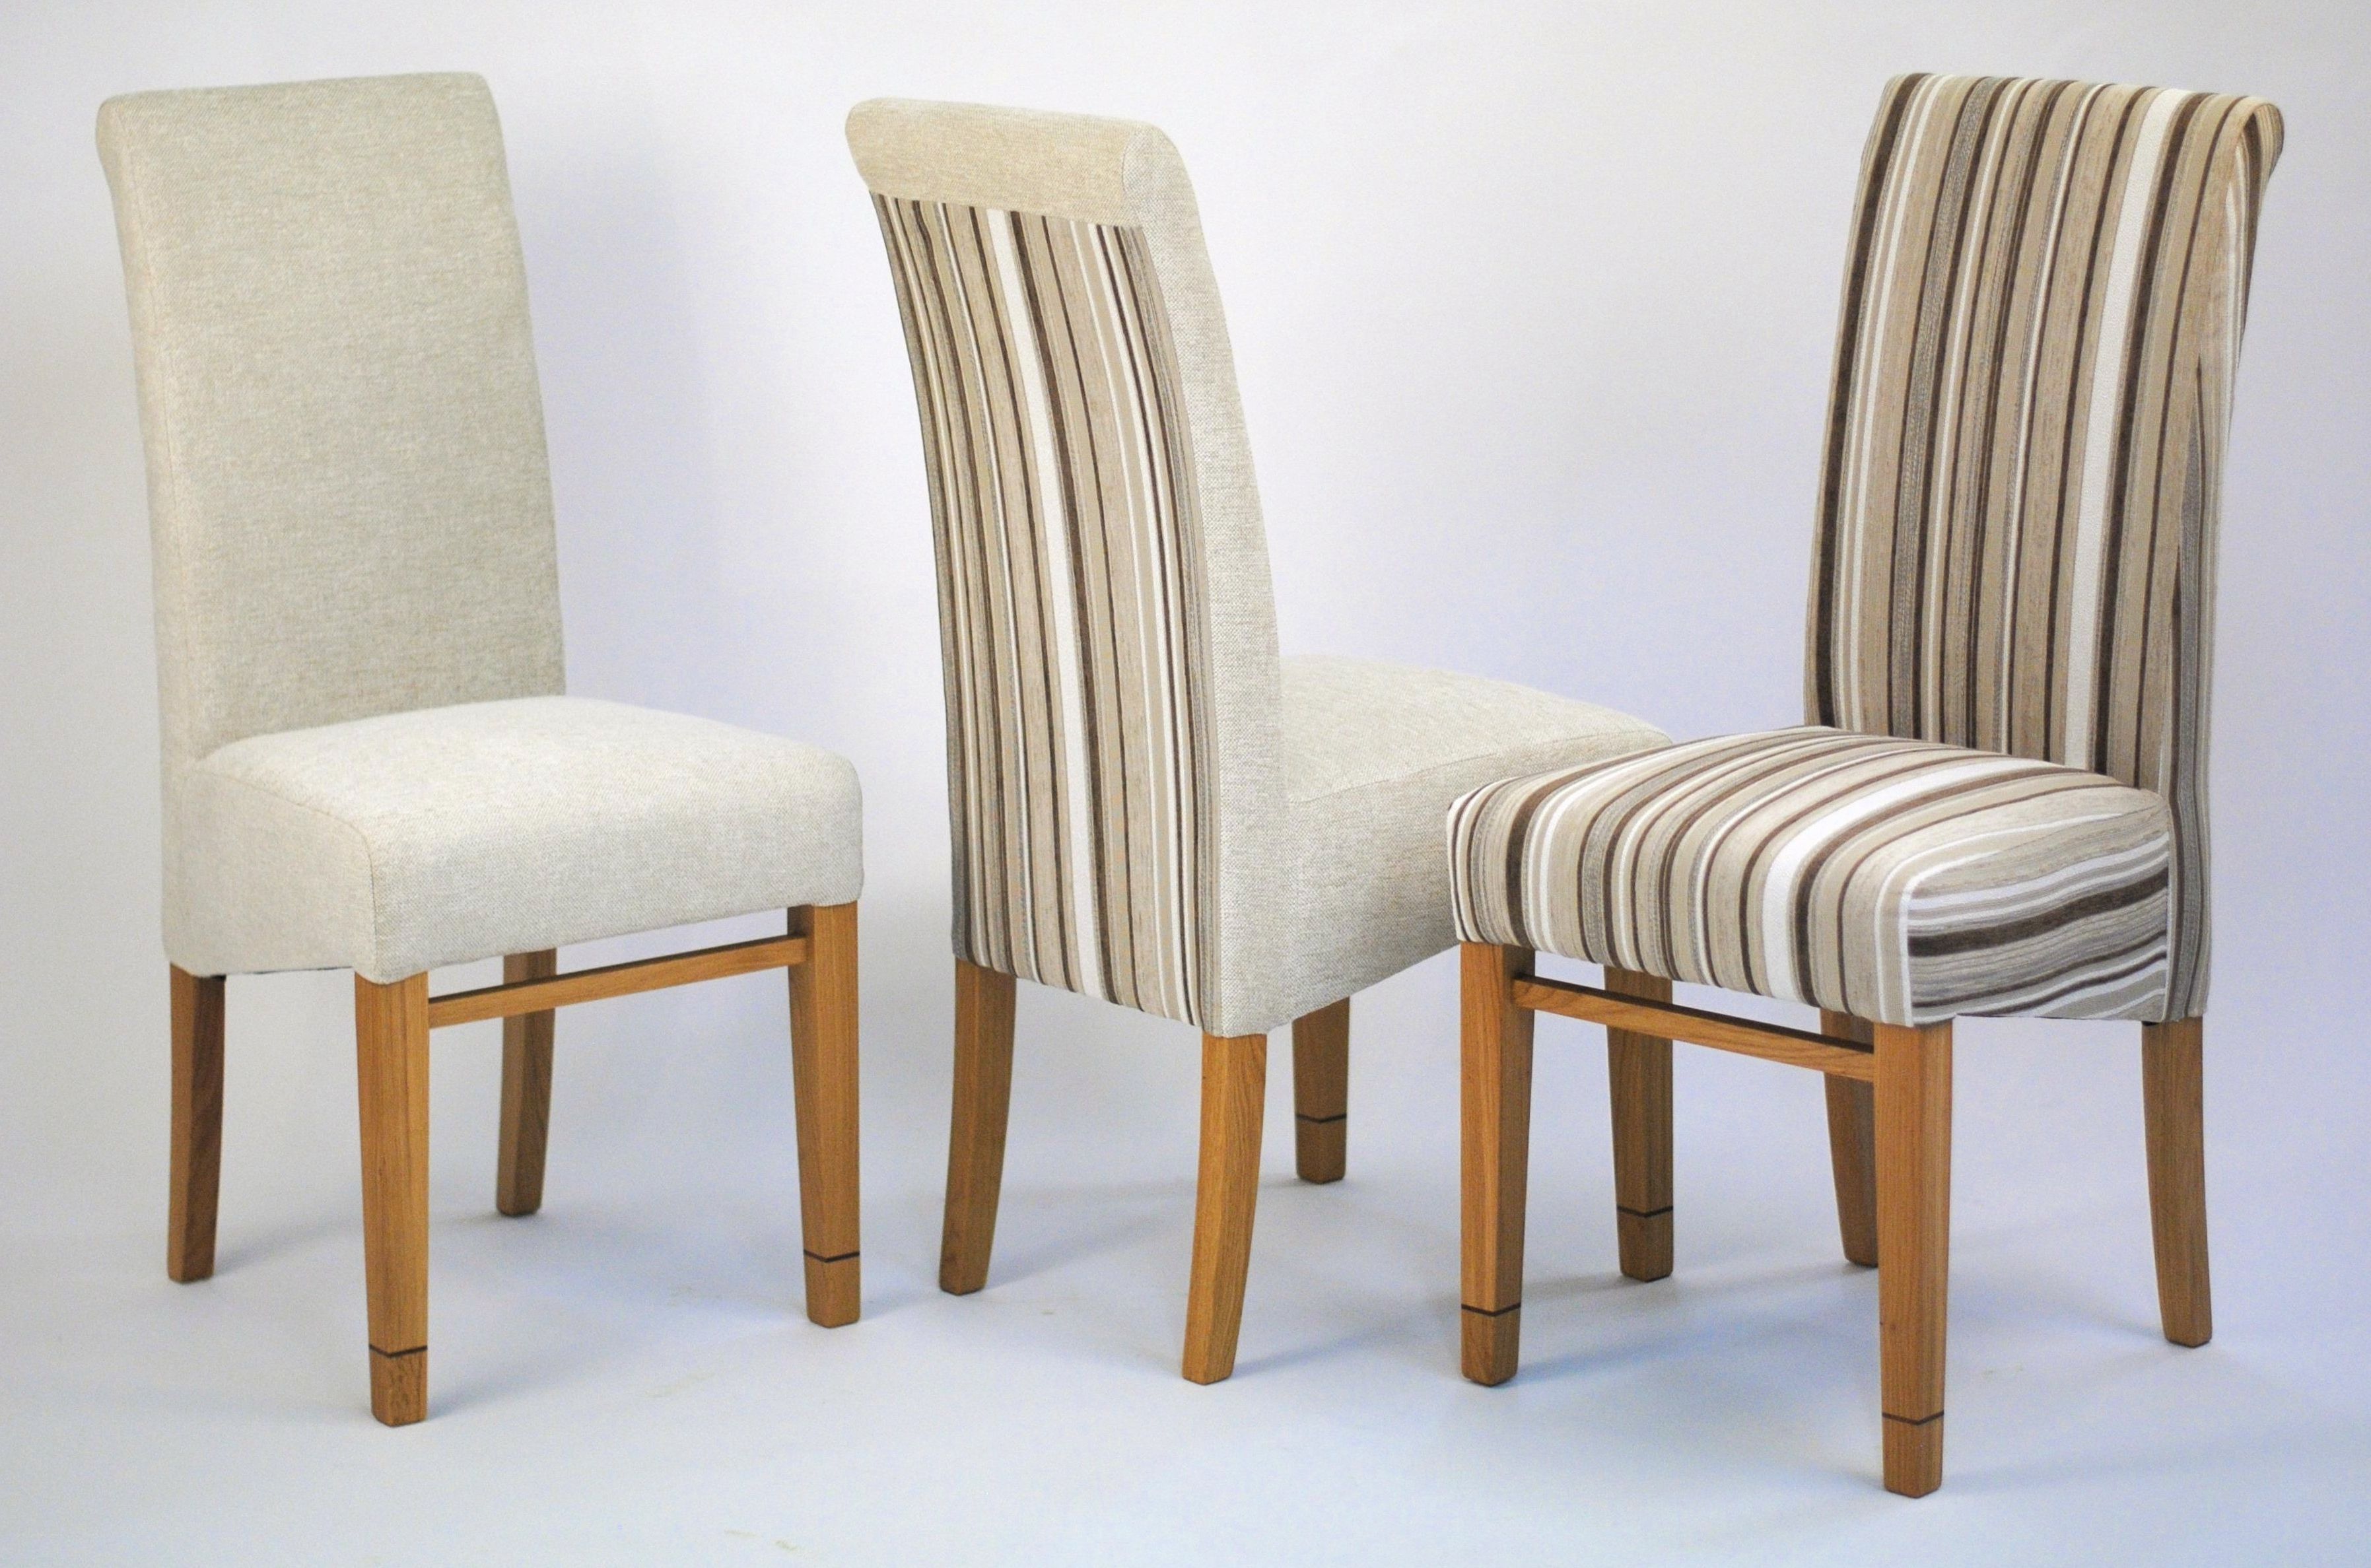 Dining Chairs Regarding Widely Used Upholstered Dining Chair – Tanner Furniture Designs (View 6 of 25)